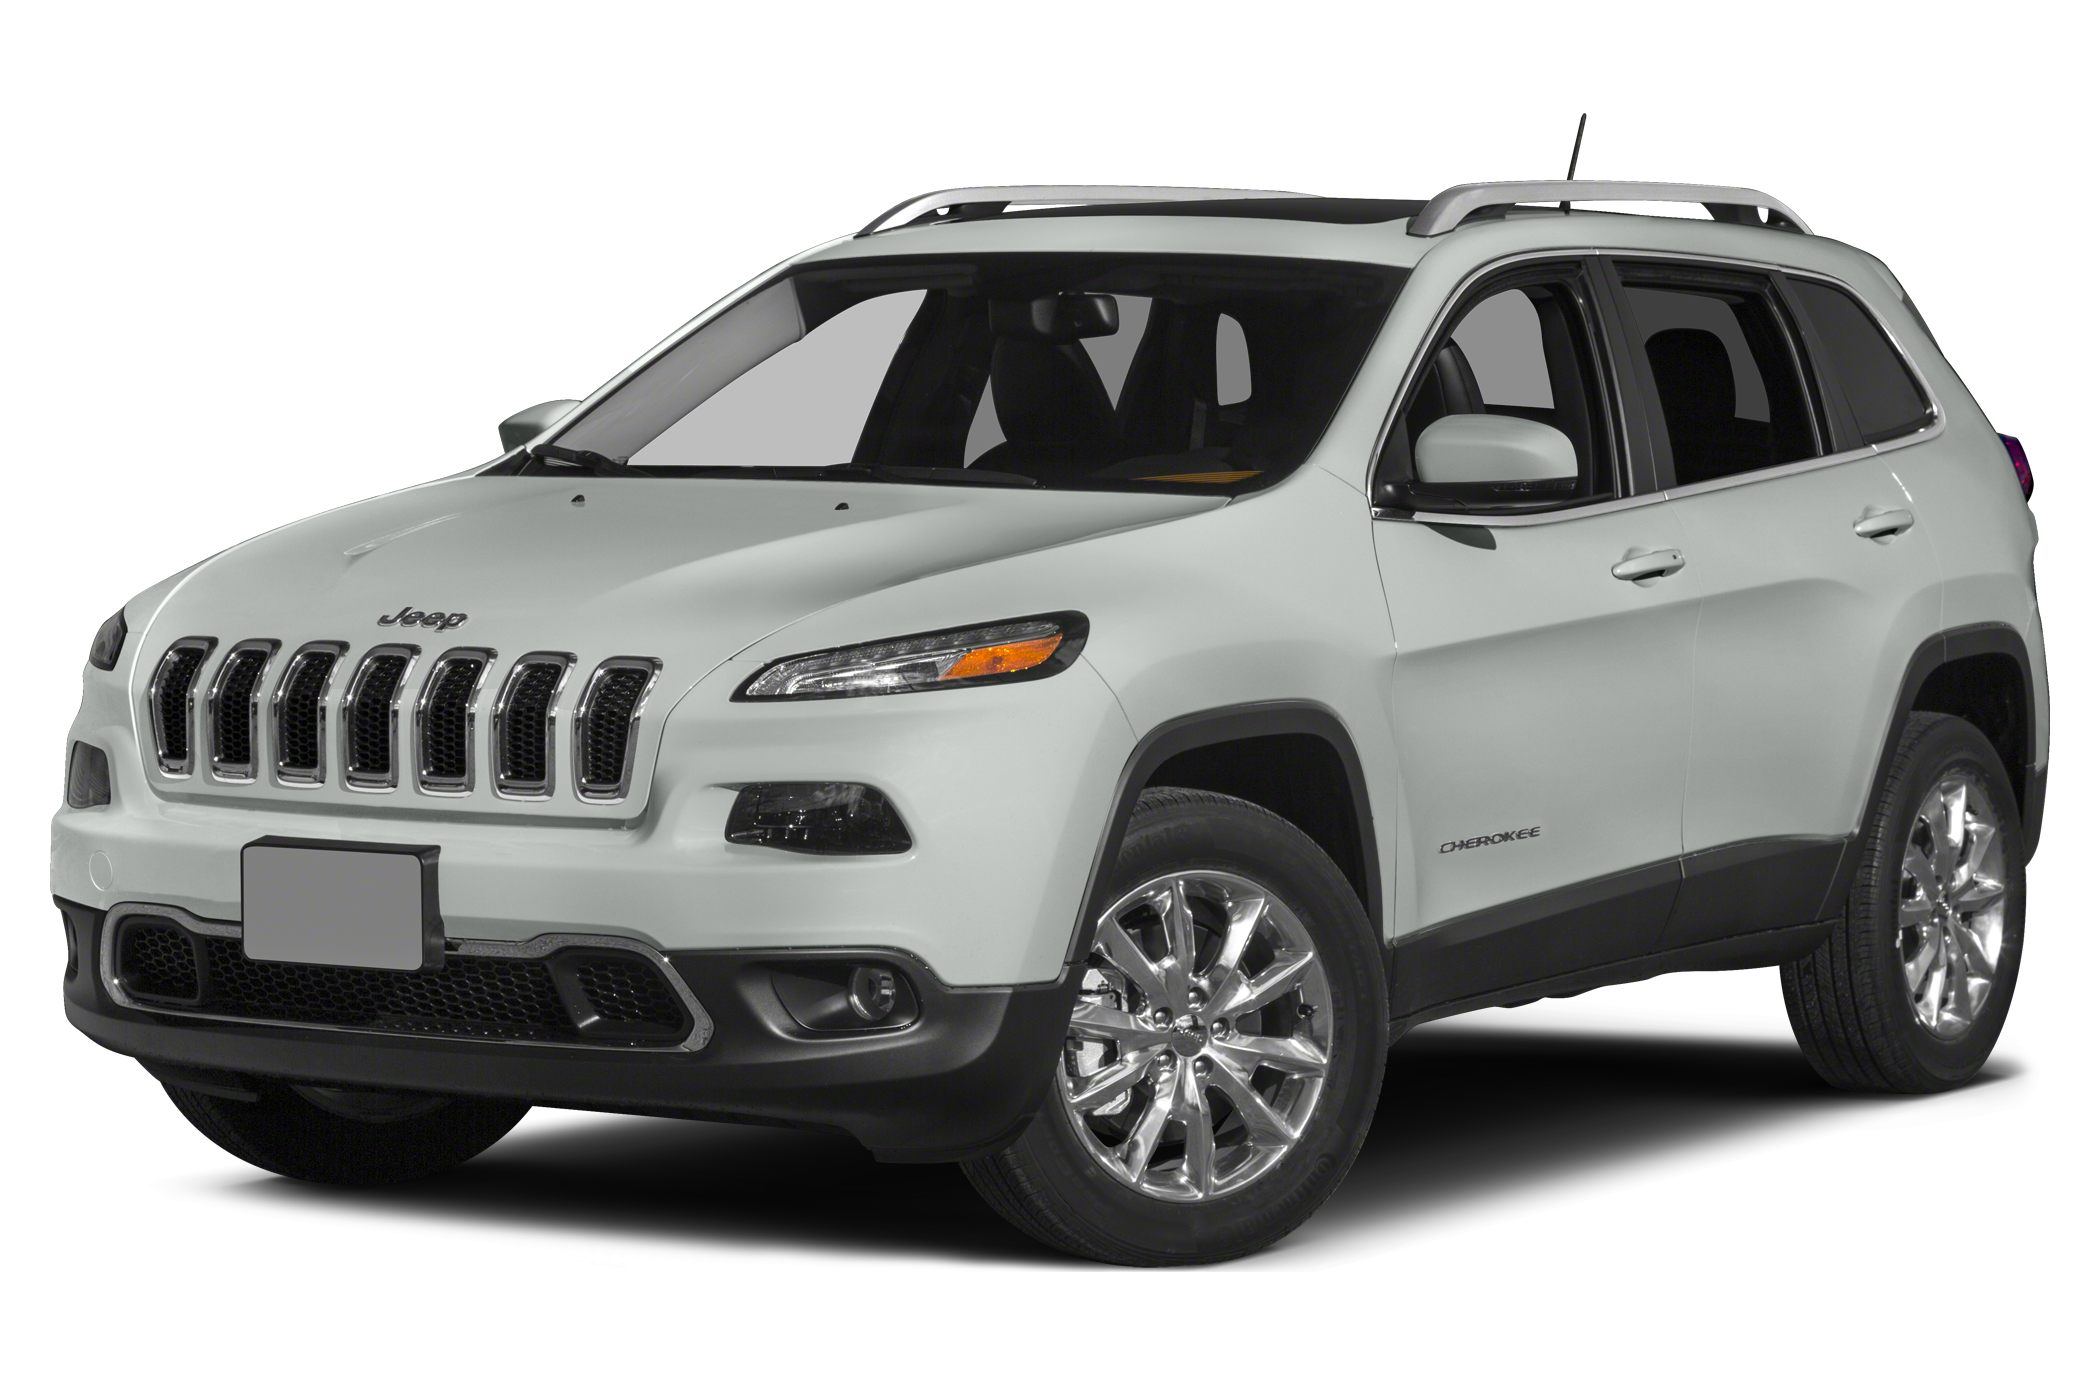 2015 Jeep Cherokee Latitude SUV for sale in Tacoma for $28,585 with 10 miles